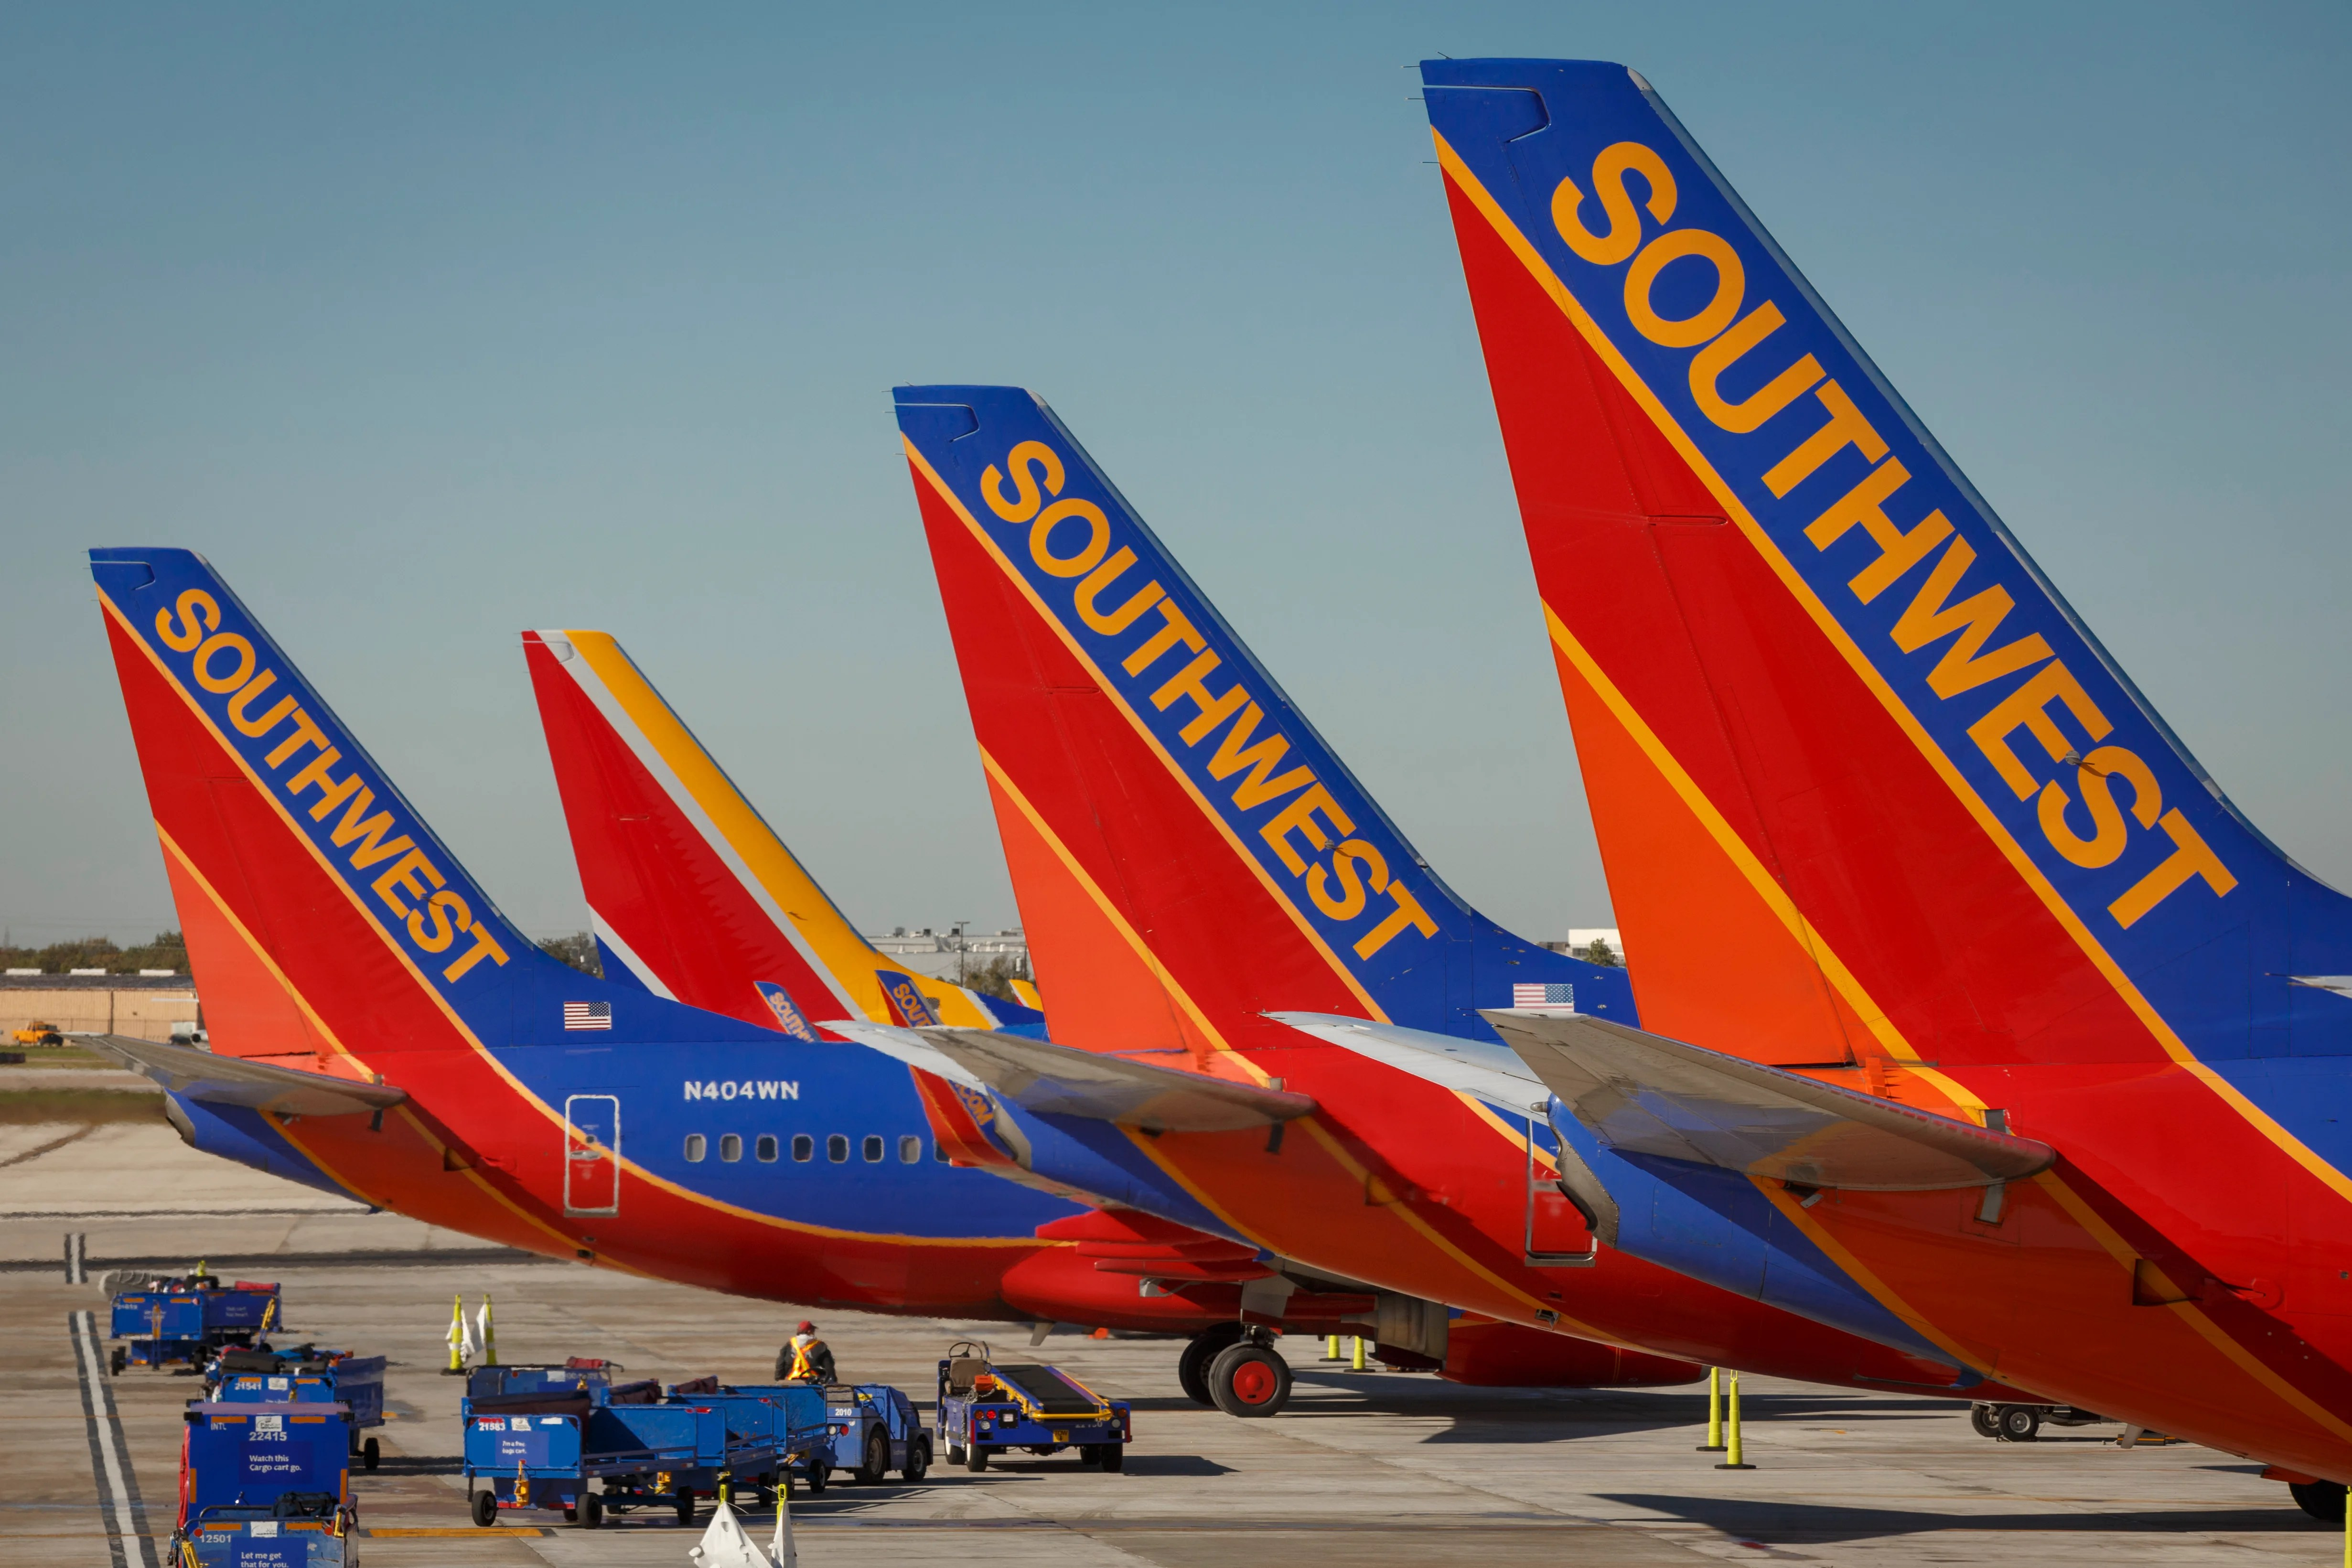 We're Giving Away Over 8 Million Southwest Rapid Rewards Points in Partnership With Chase